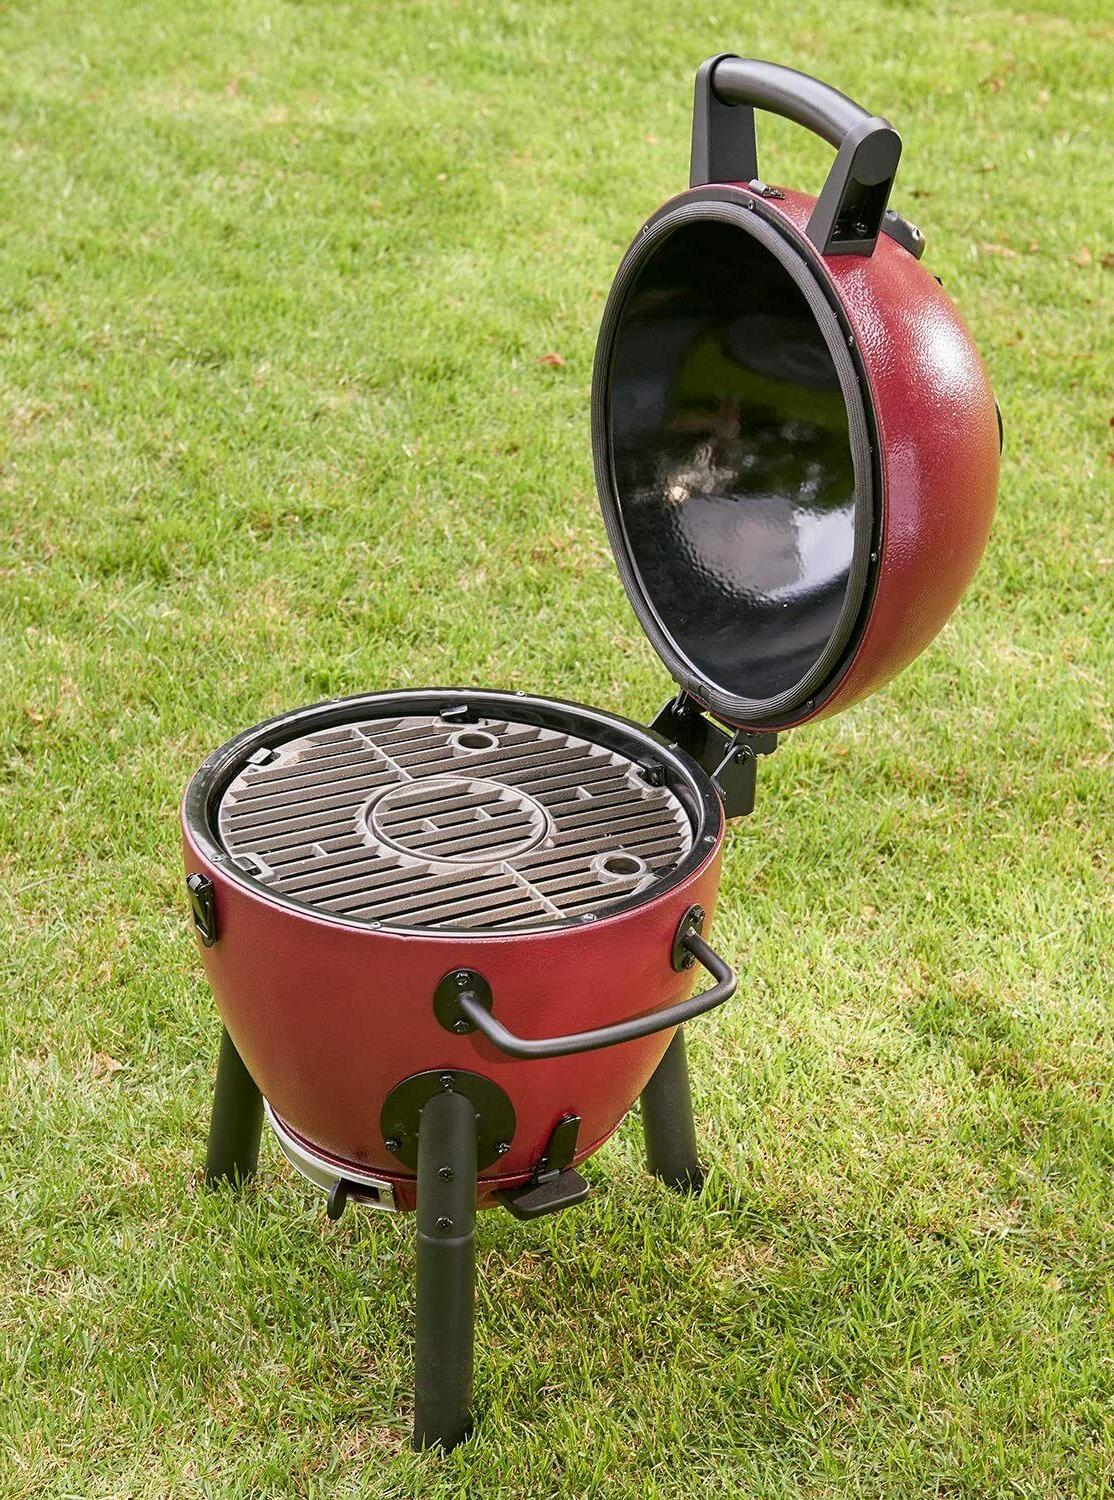 Char-Griller Red Charcoal Grill smoker barbecuing